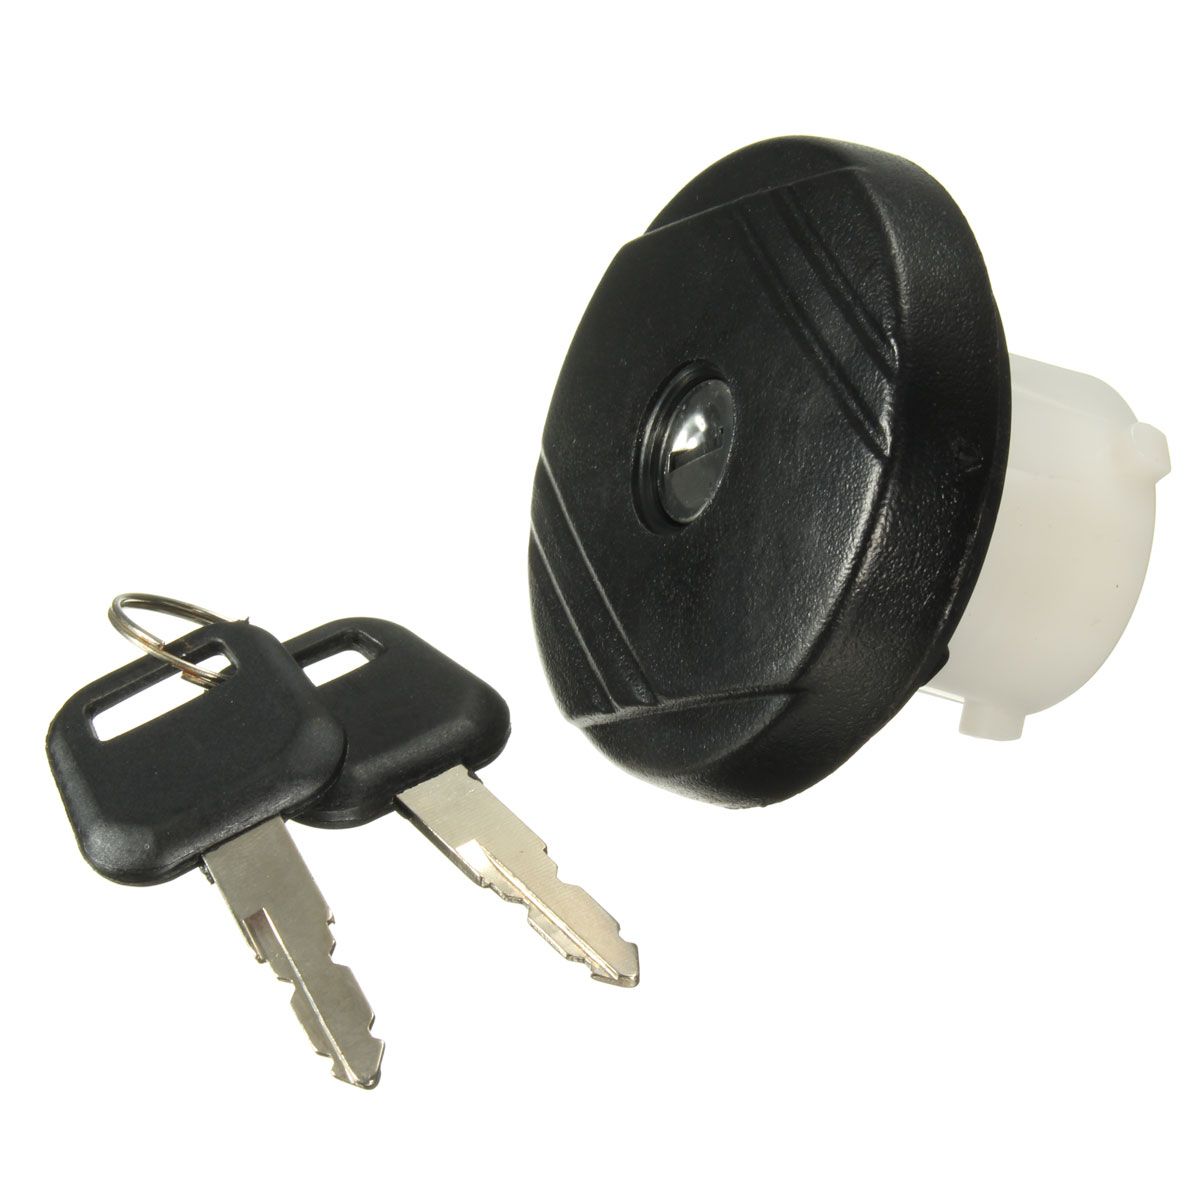 Locking Fuel Petrol For Diesel Cap & 2 Keys for FORD TRANSIT MK6 2000-2006 MESO674 набор автомобильных экранов trokot для ford transit 2000 2006 на передние двери и на передние форточки